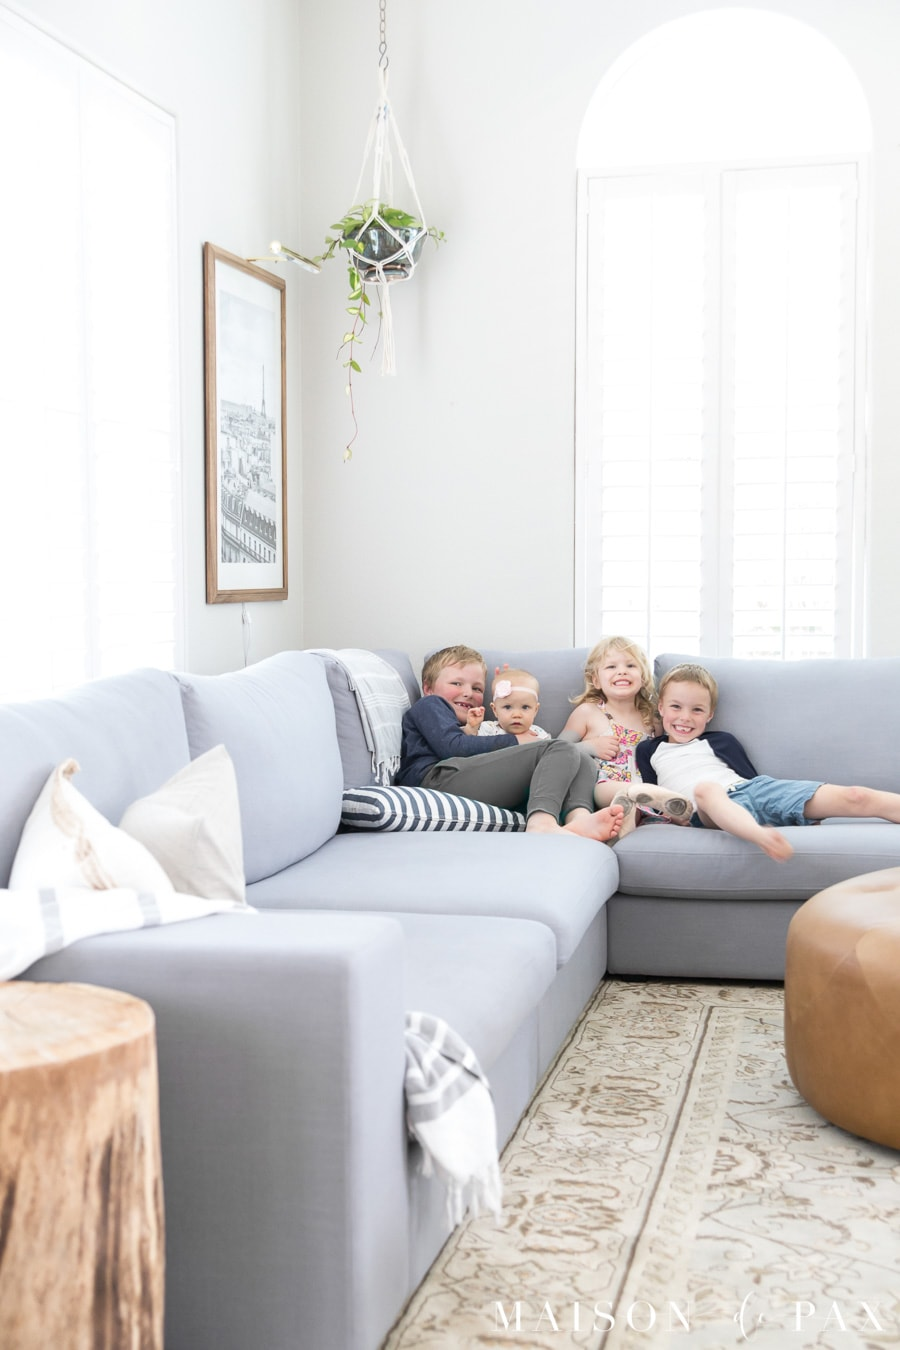 Kid-friendly decorating ideas: find out how to make your home family friendly without sacrificing style! #kiddecor #decoratingforkids #familyfriendly #kidfriendlydecorating #decoratingideas #kidfriendlydesign #sectionalsofa